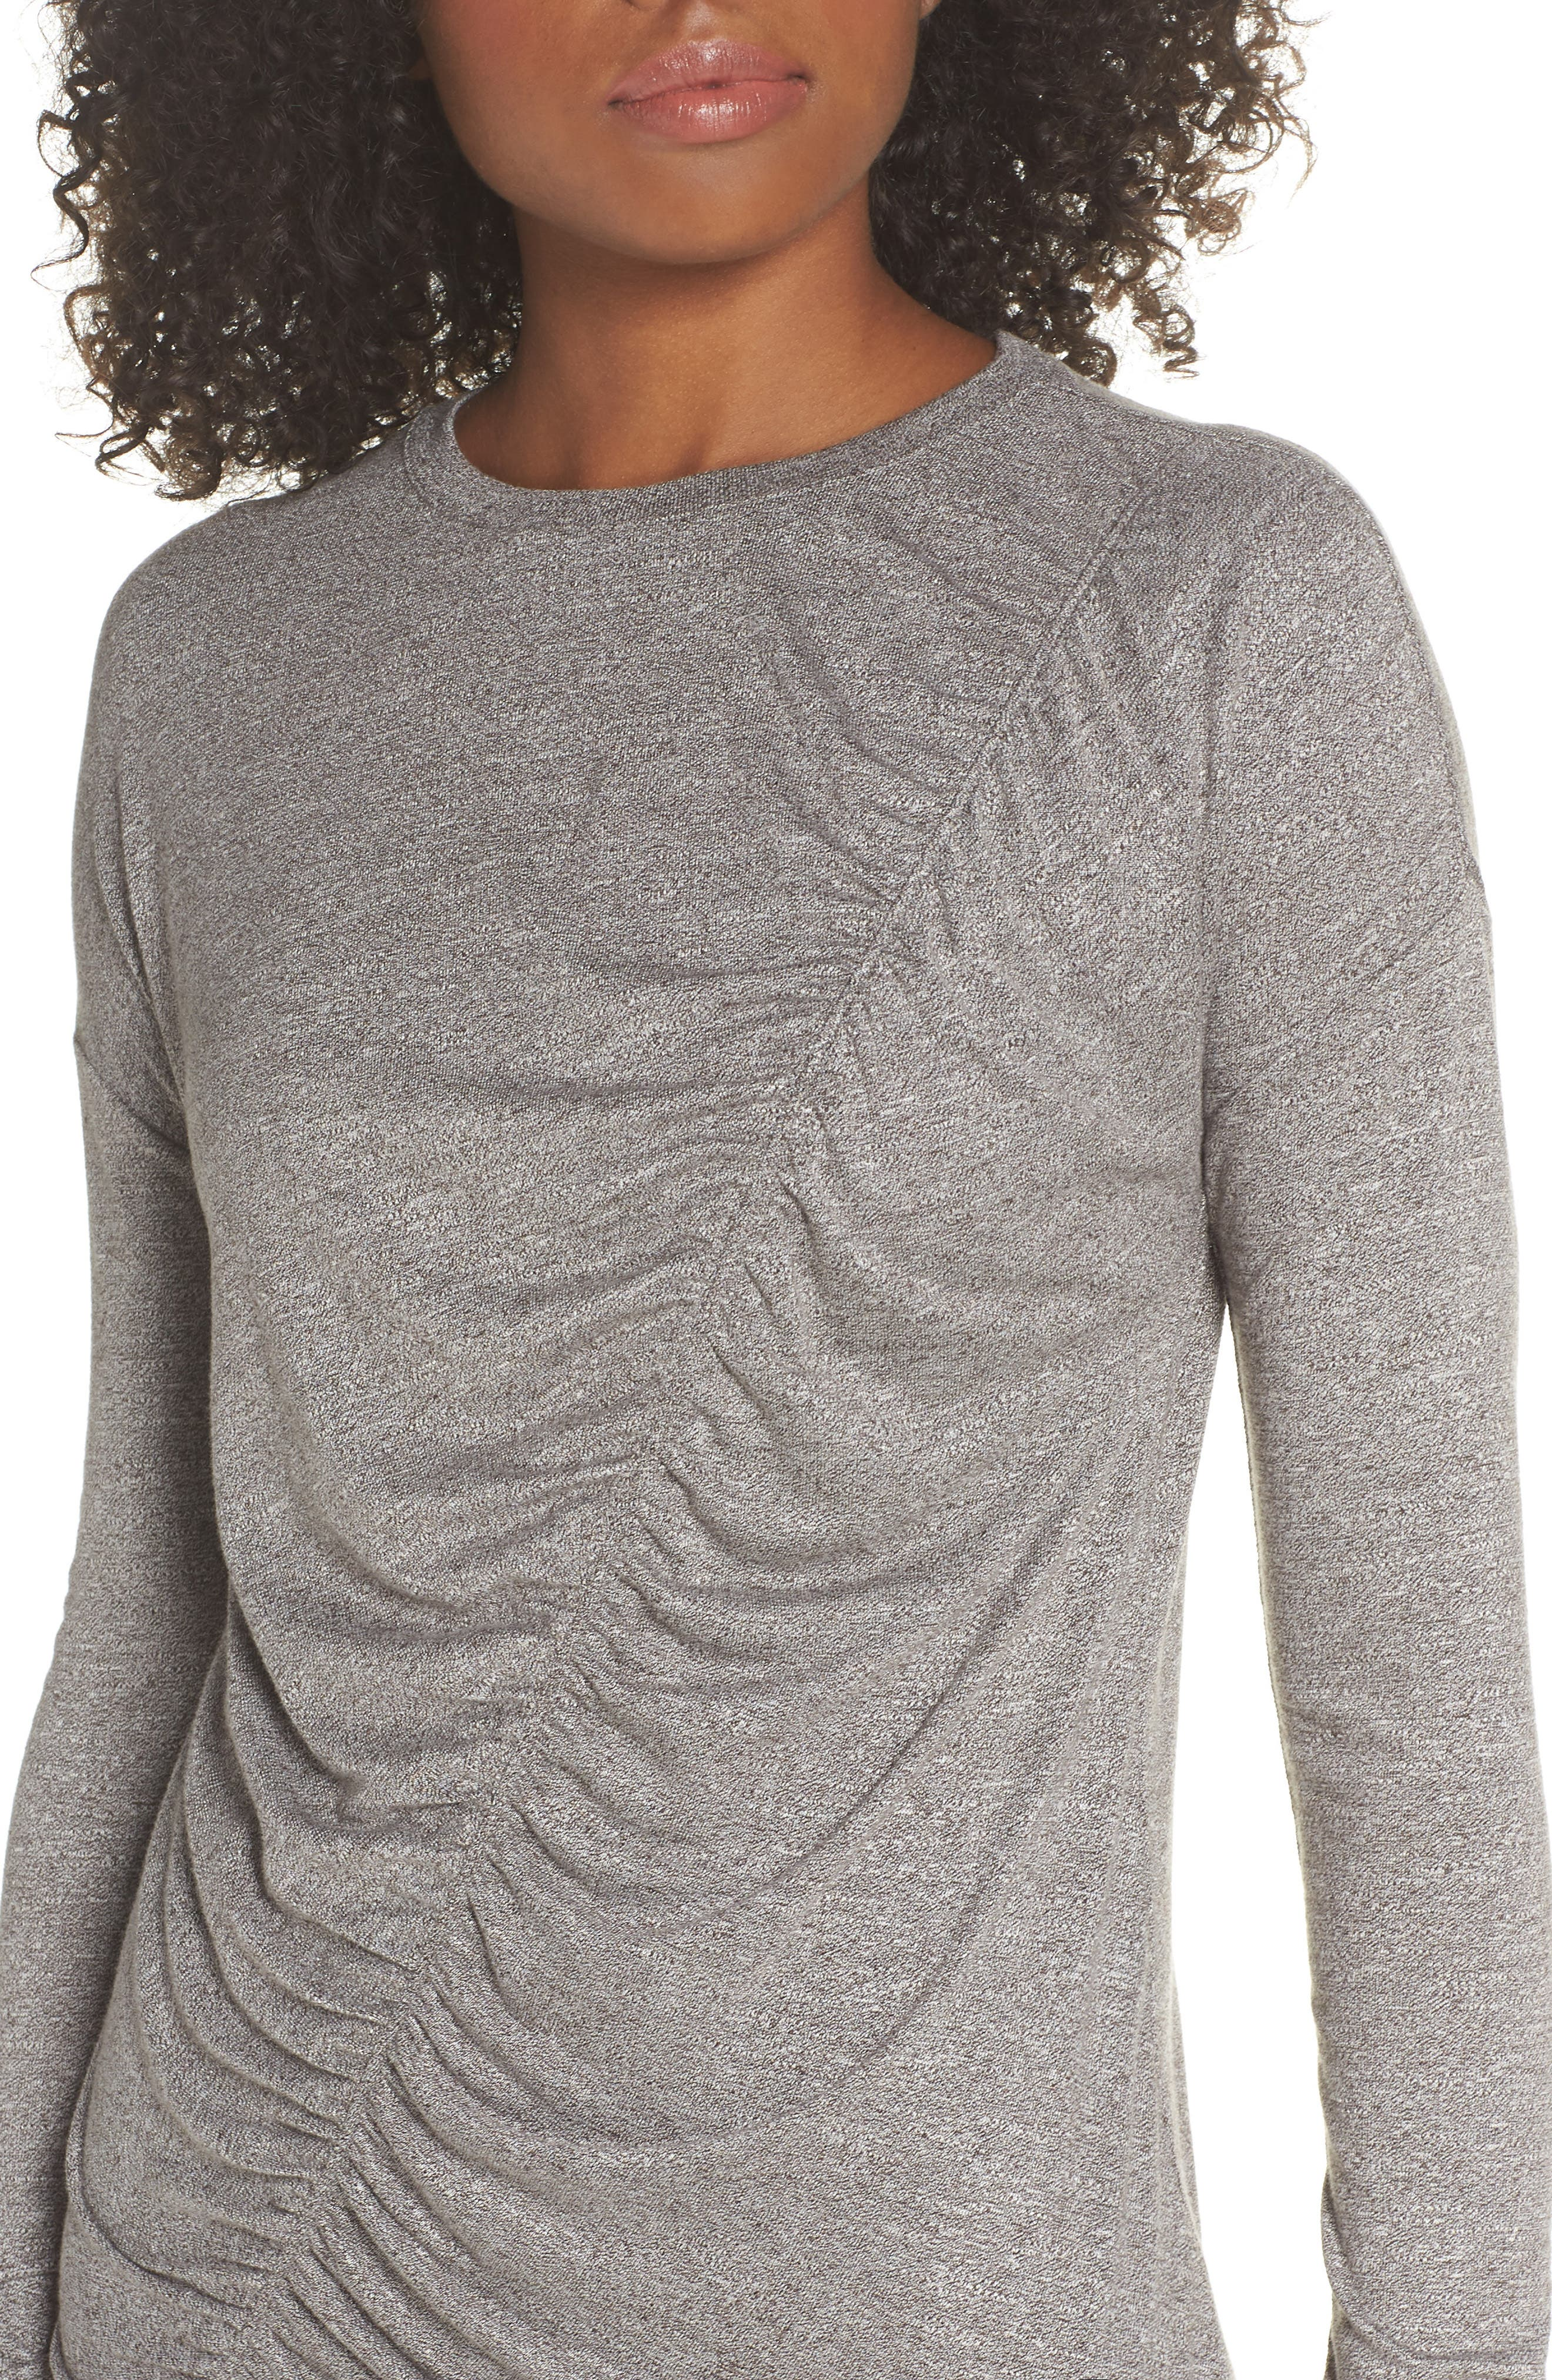 So Graceful Ruched Tee,                             Alternate thumbnail 4, color,                             GREY DARK HEATHER